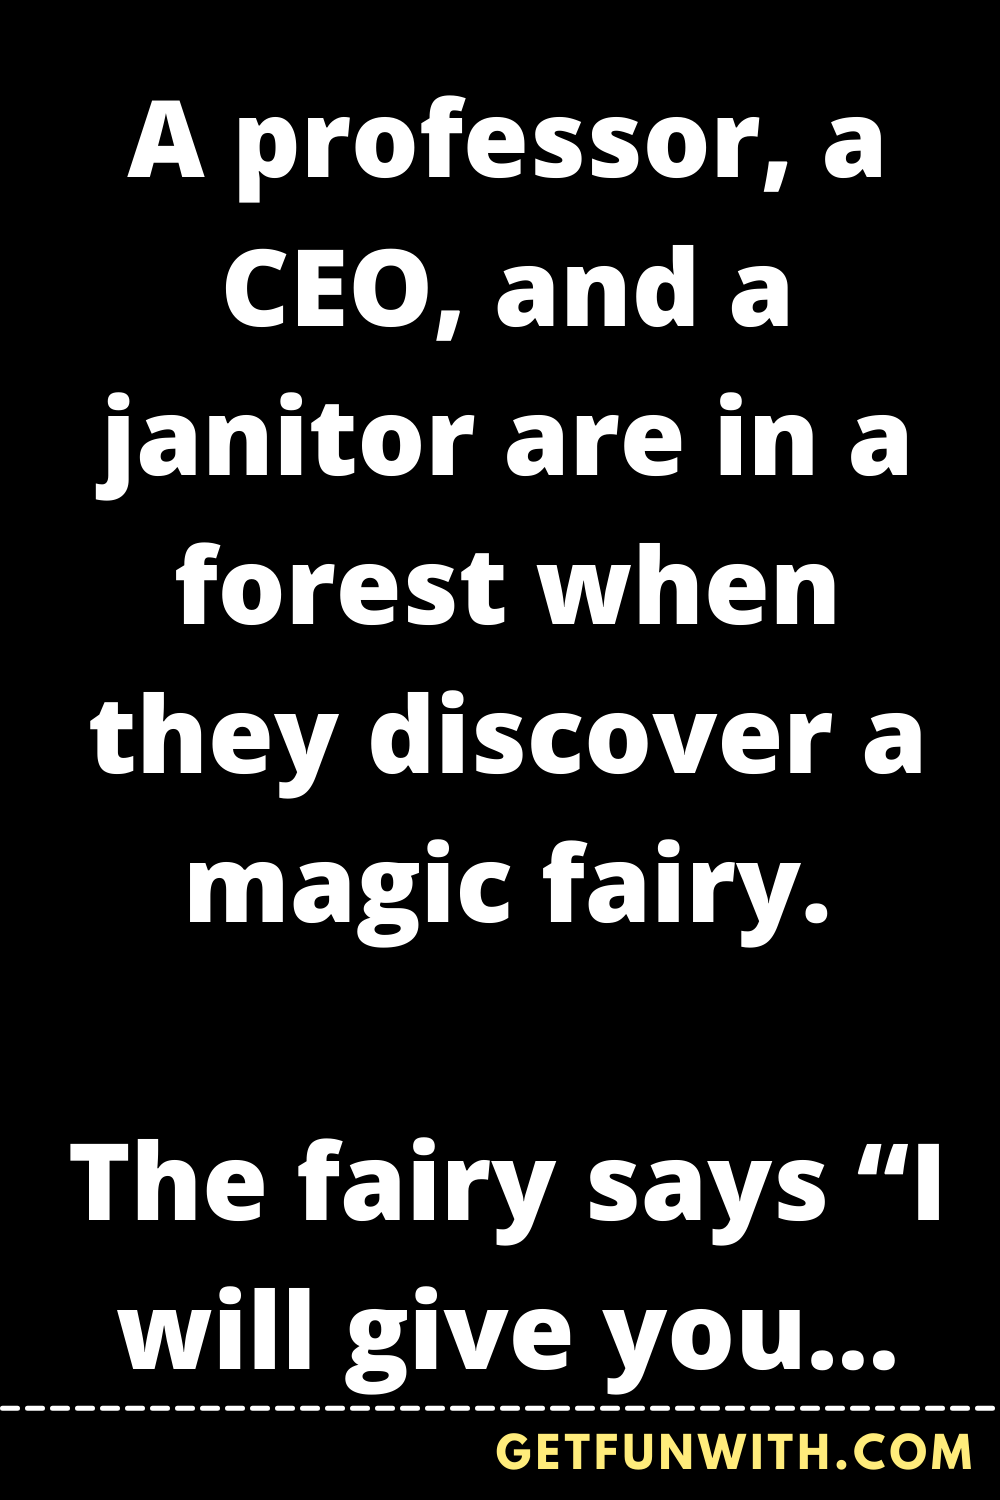 A professor, a CEO, and a janitor are in a forest when they discover a magic fairy.